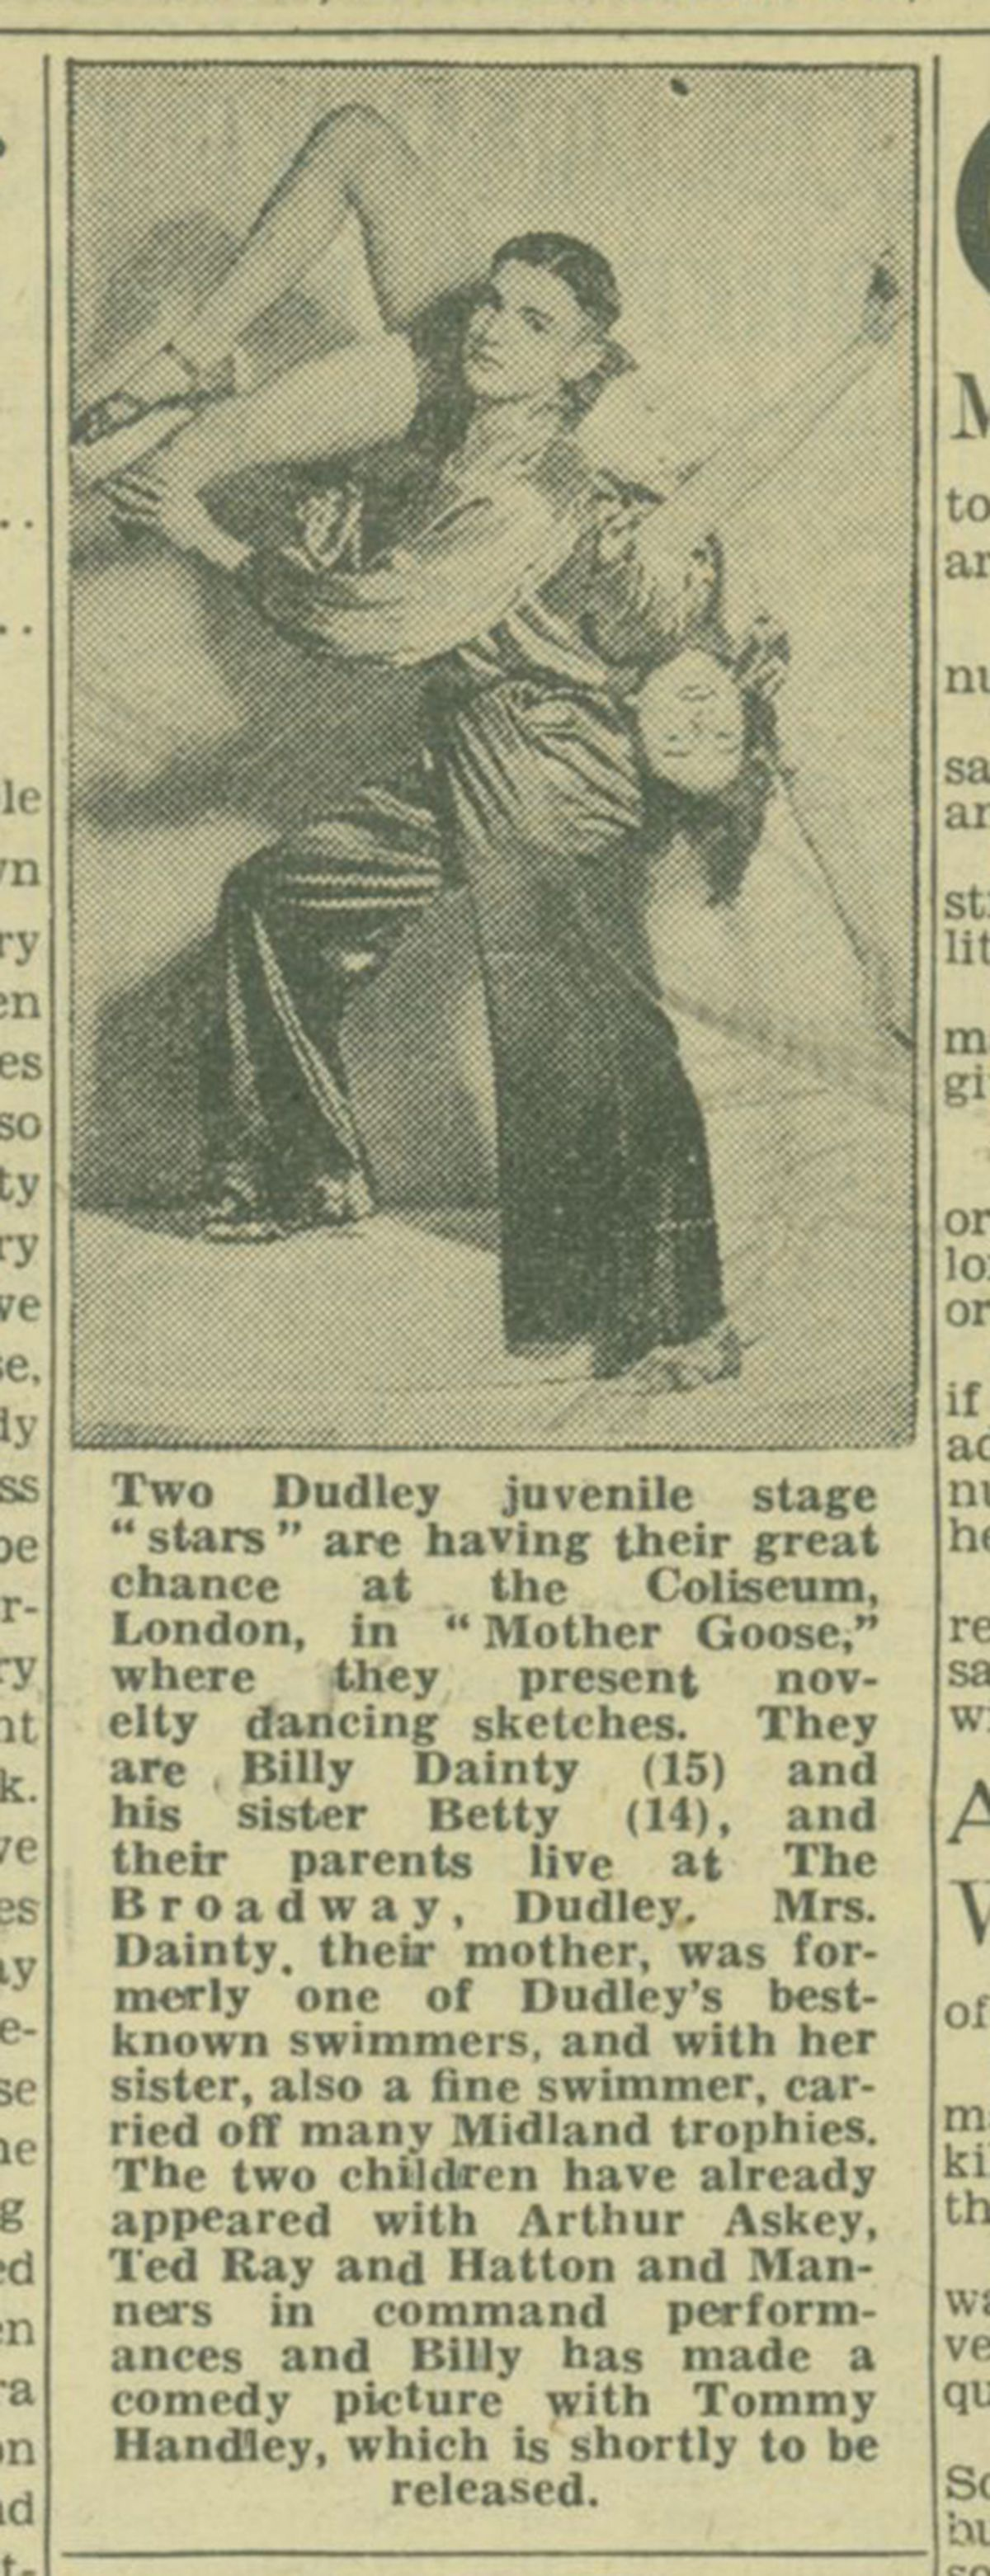 How the Express & Star reported 15-year-old Billy Dainty's performance at the London Coliseum, with his sister Betty